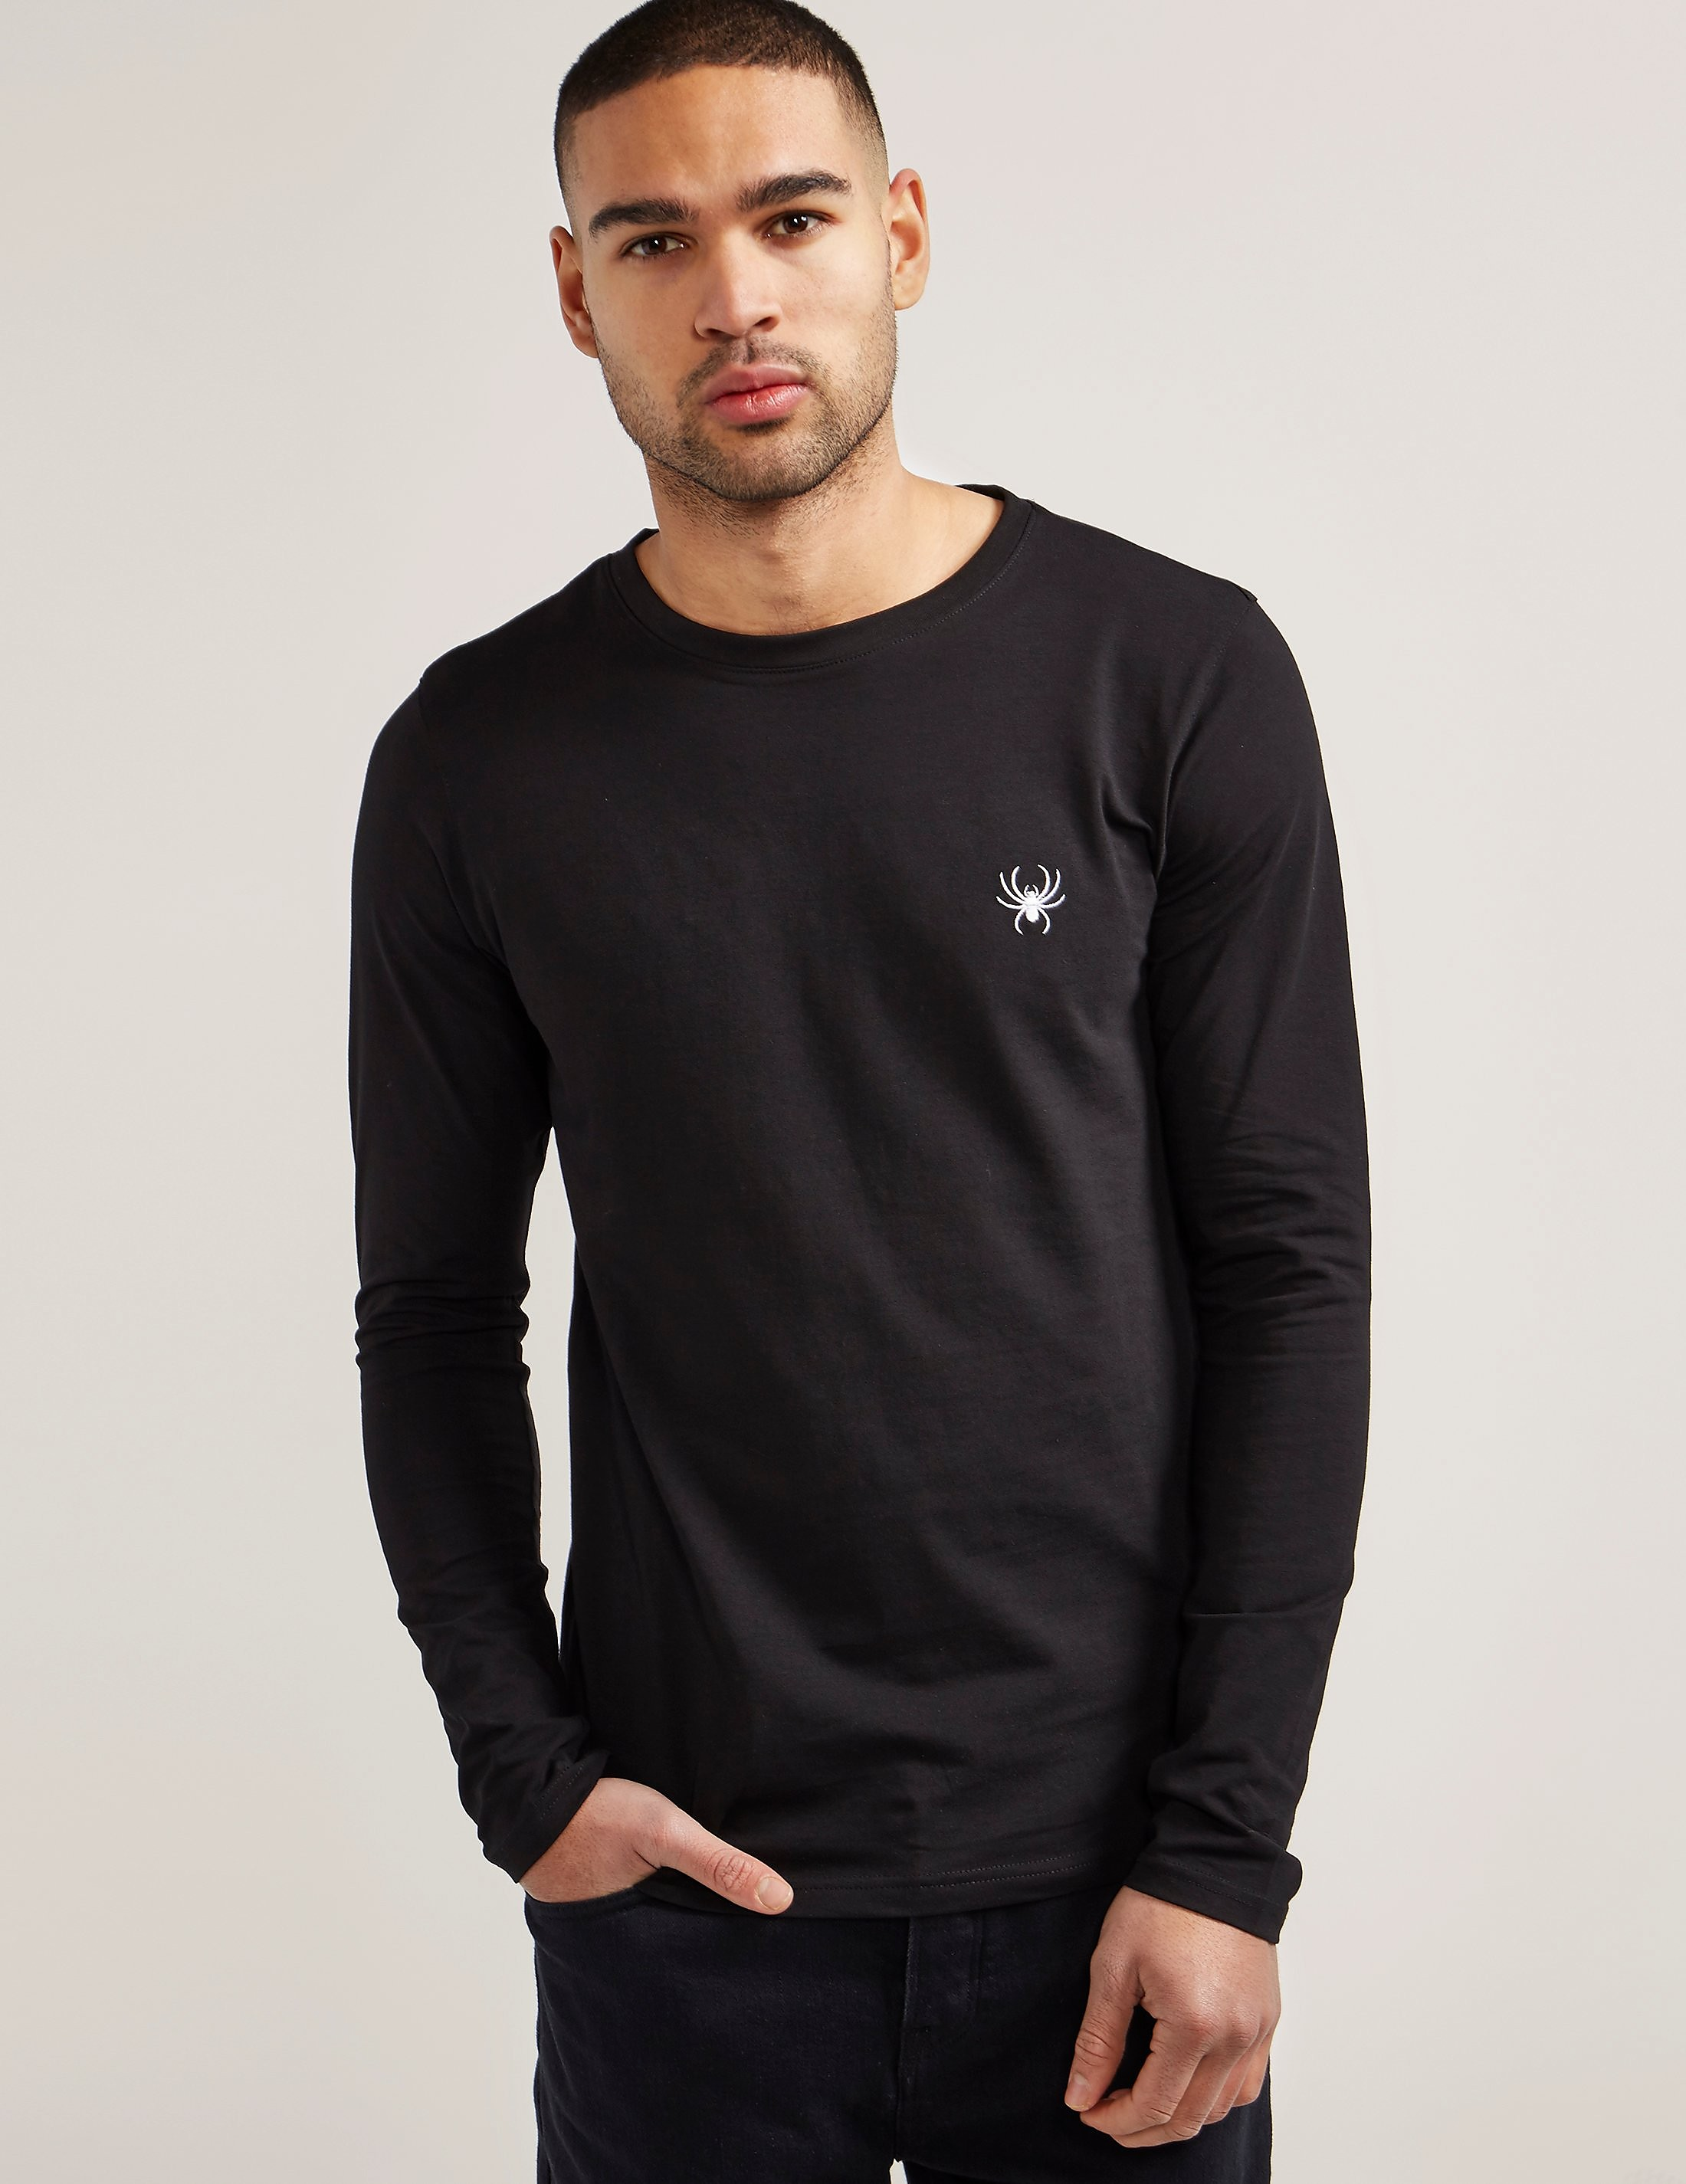 Intense Clothing Rebal Long Sleeve T-Shirt